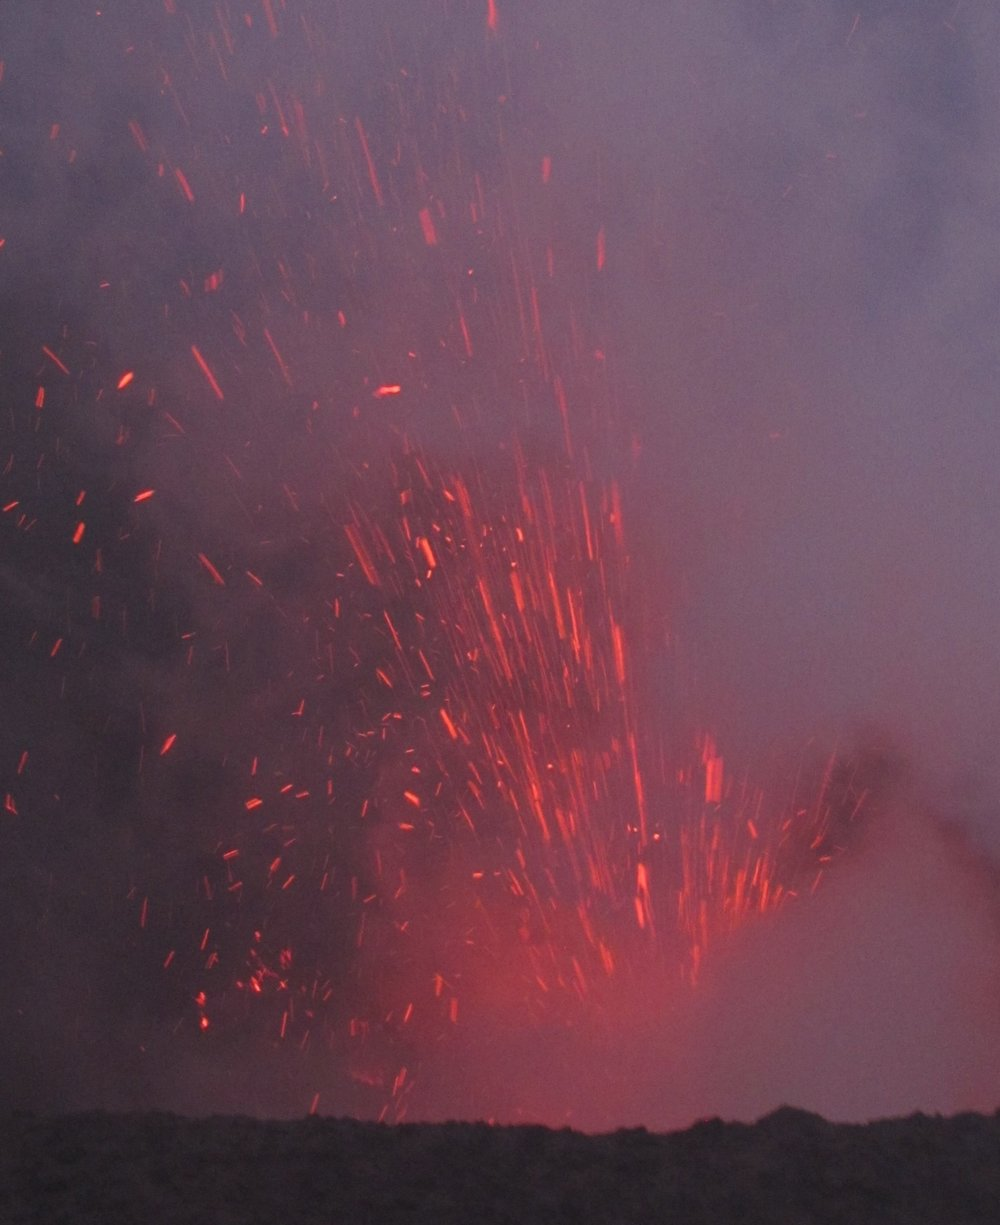 A unique pyrotechnic display